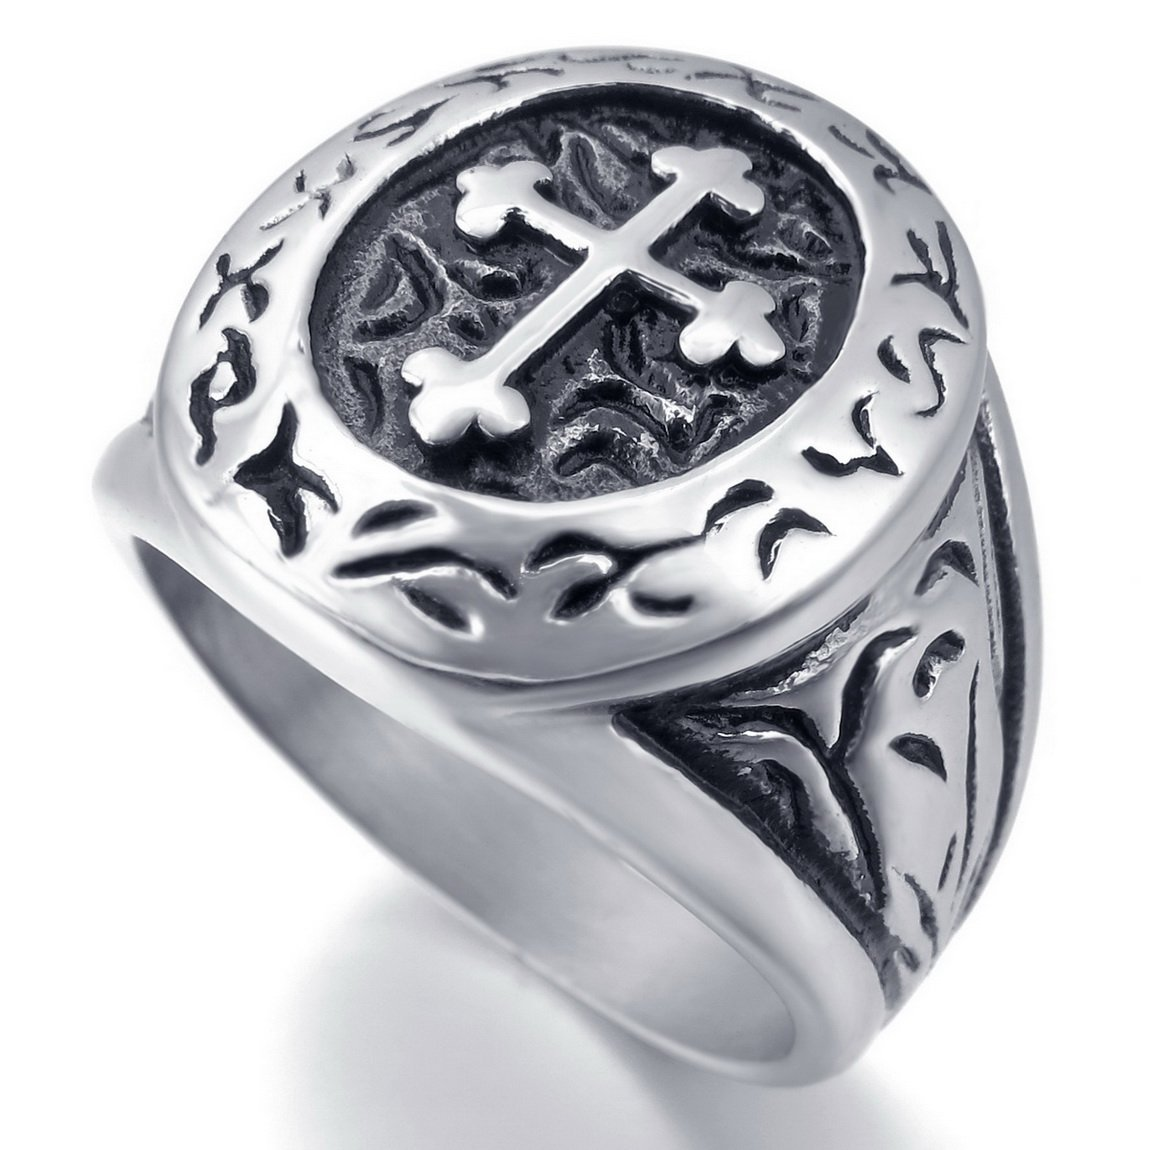 INBLUE Men's Stainless Steel Ring Silver Tone Black Cross Oval Size10 by INBLUE (Image #3)